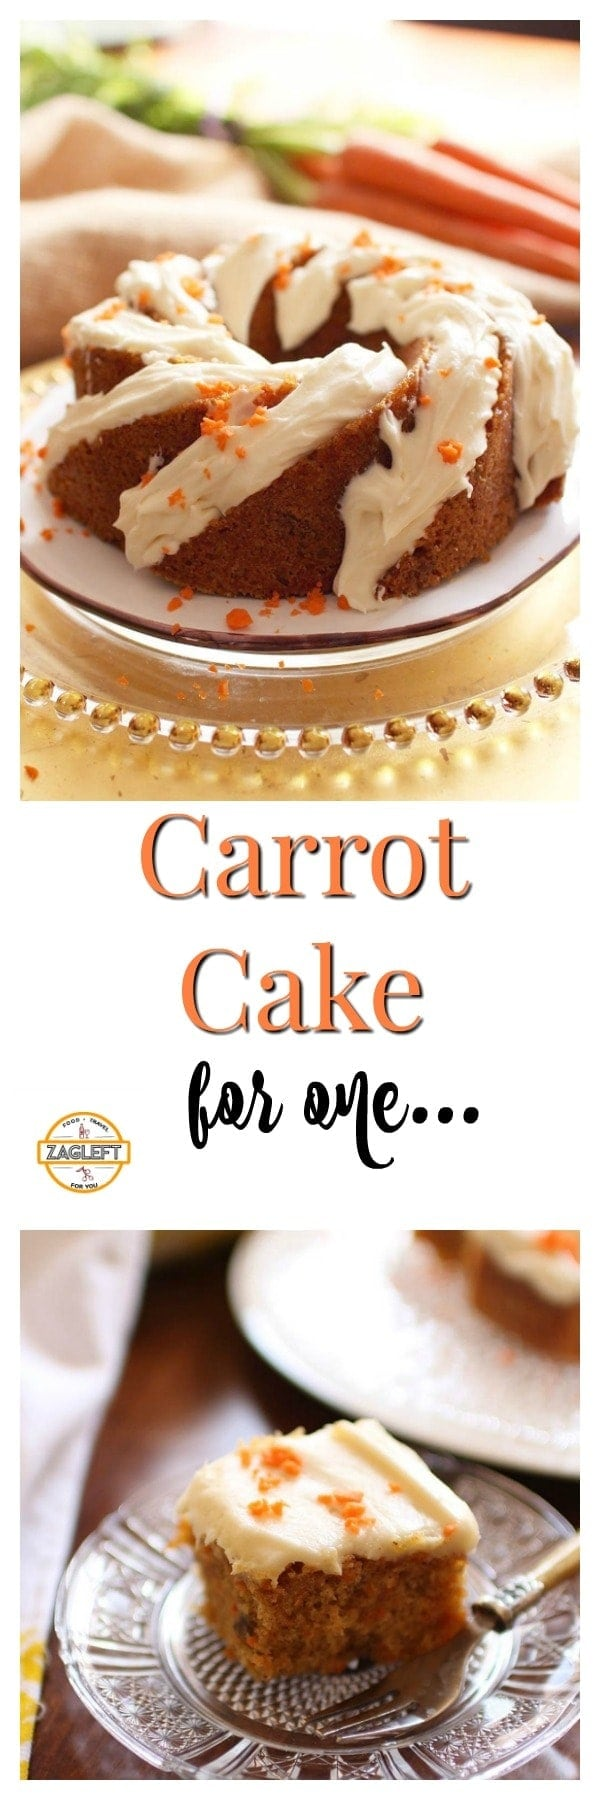 This delicious Carrot Cake is the perfect size for one or two people. All the ingredients and flavors you love in a carrot cake in a smaller size. | ZagLeft